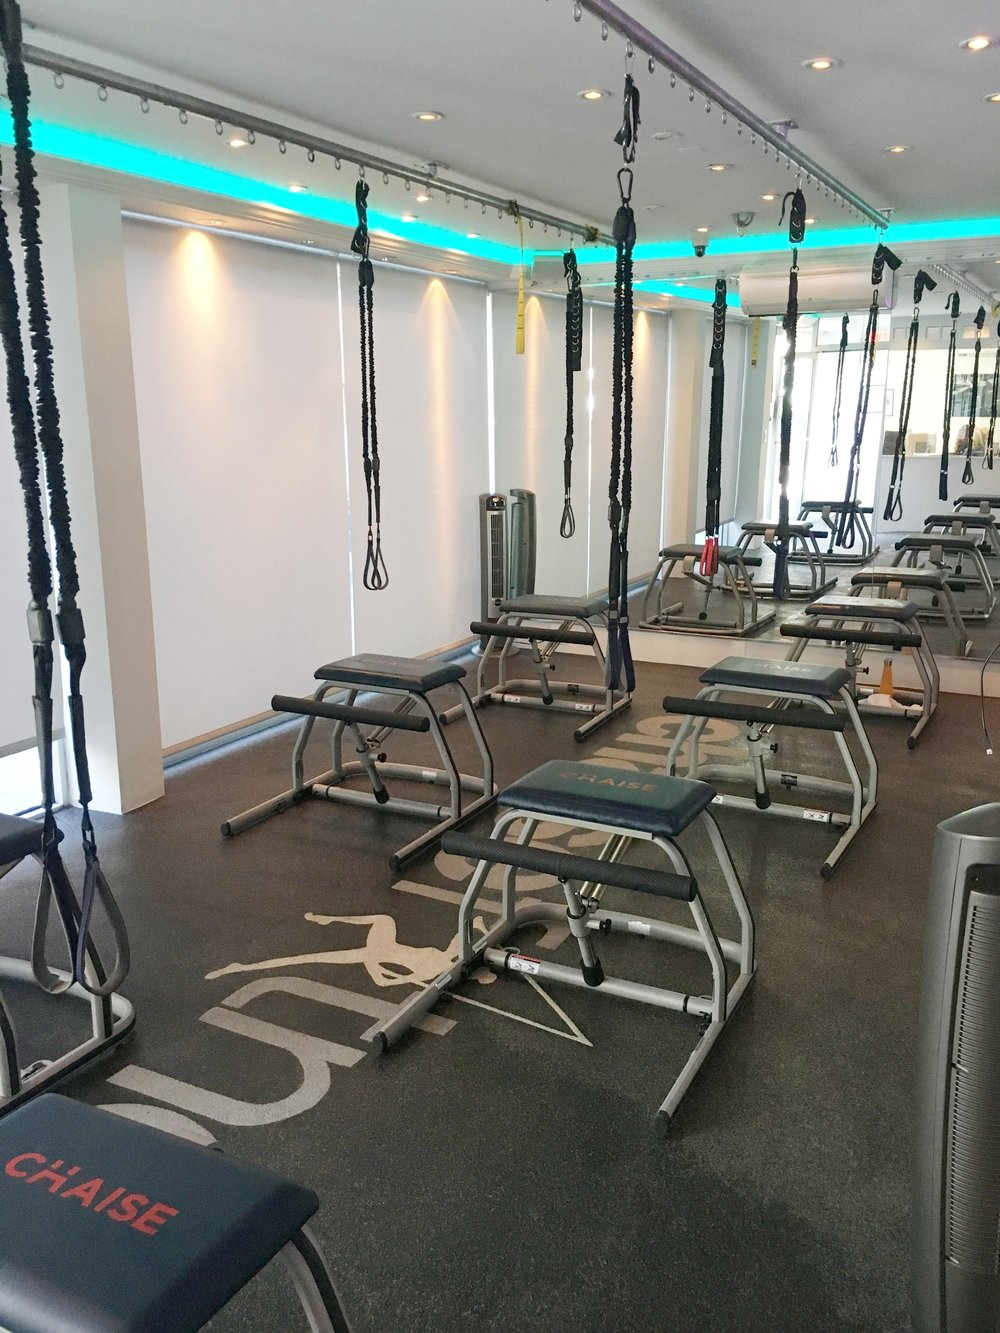 Chaise Fitness Private Studio location at 1204 Lexington Avenue : chaise fitness - Sectionals, Sofas & Couches